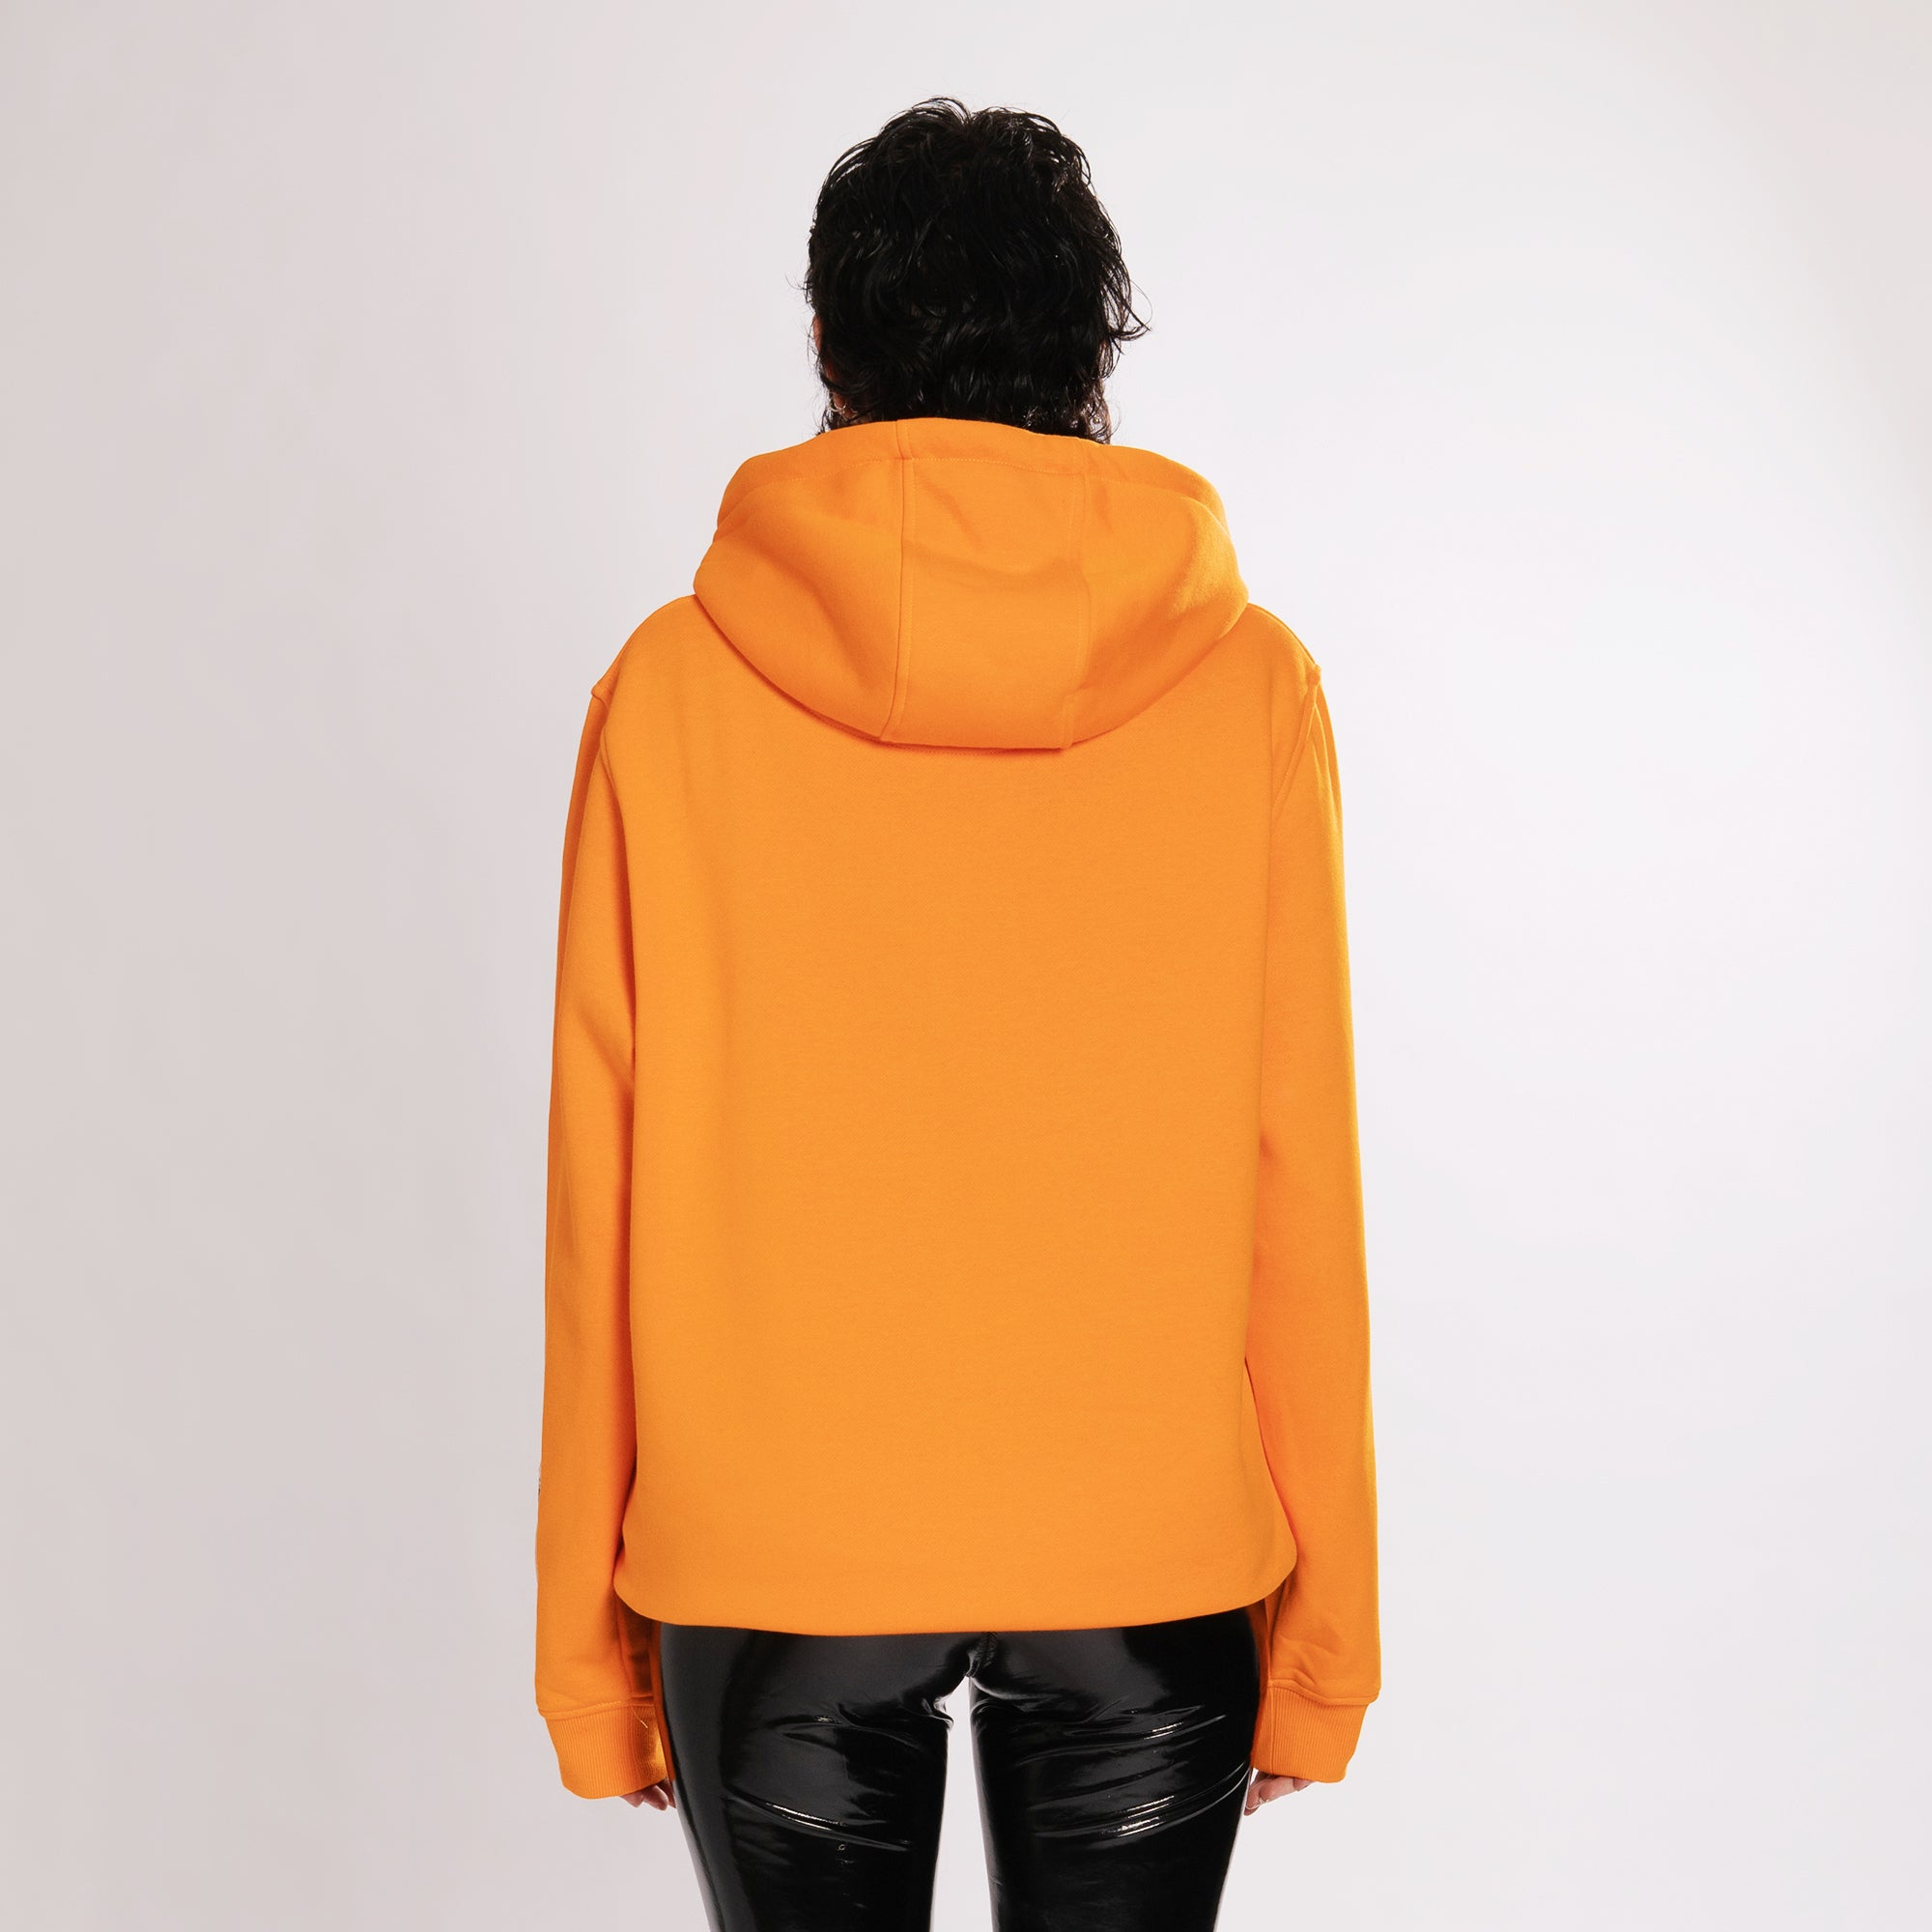 GLITCHED ACCELERATION HOODIE - ORANGE